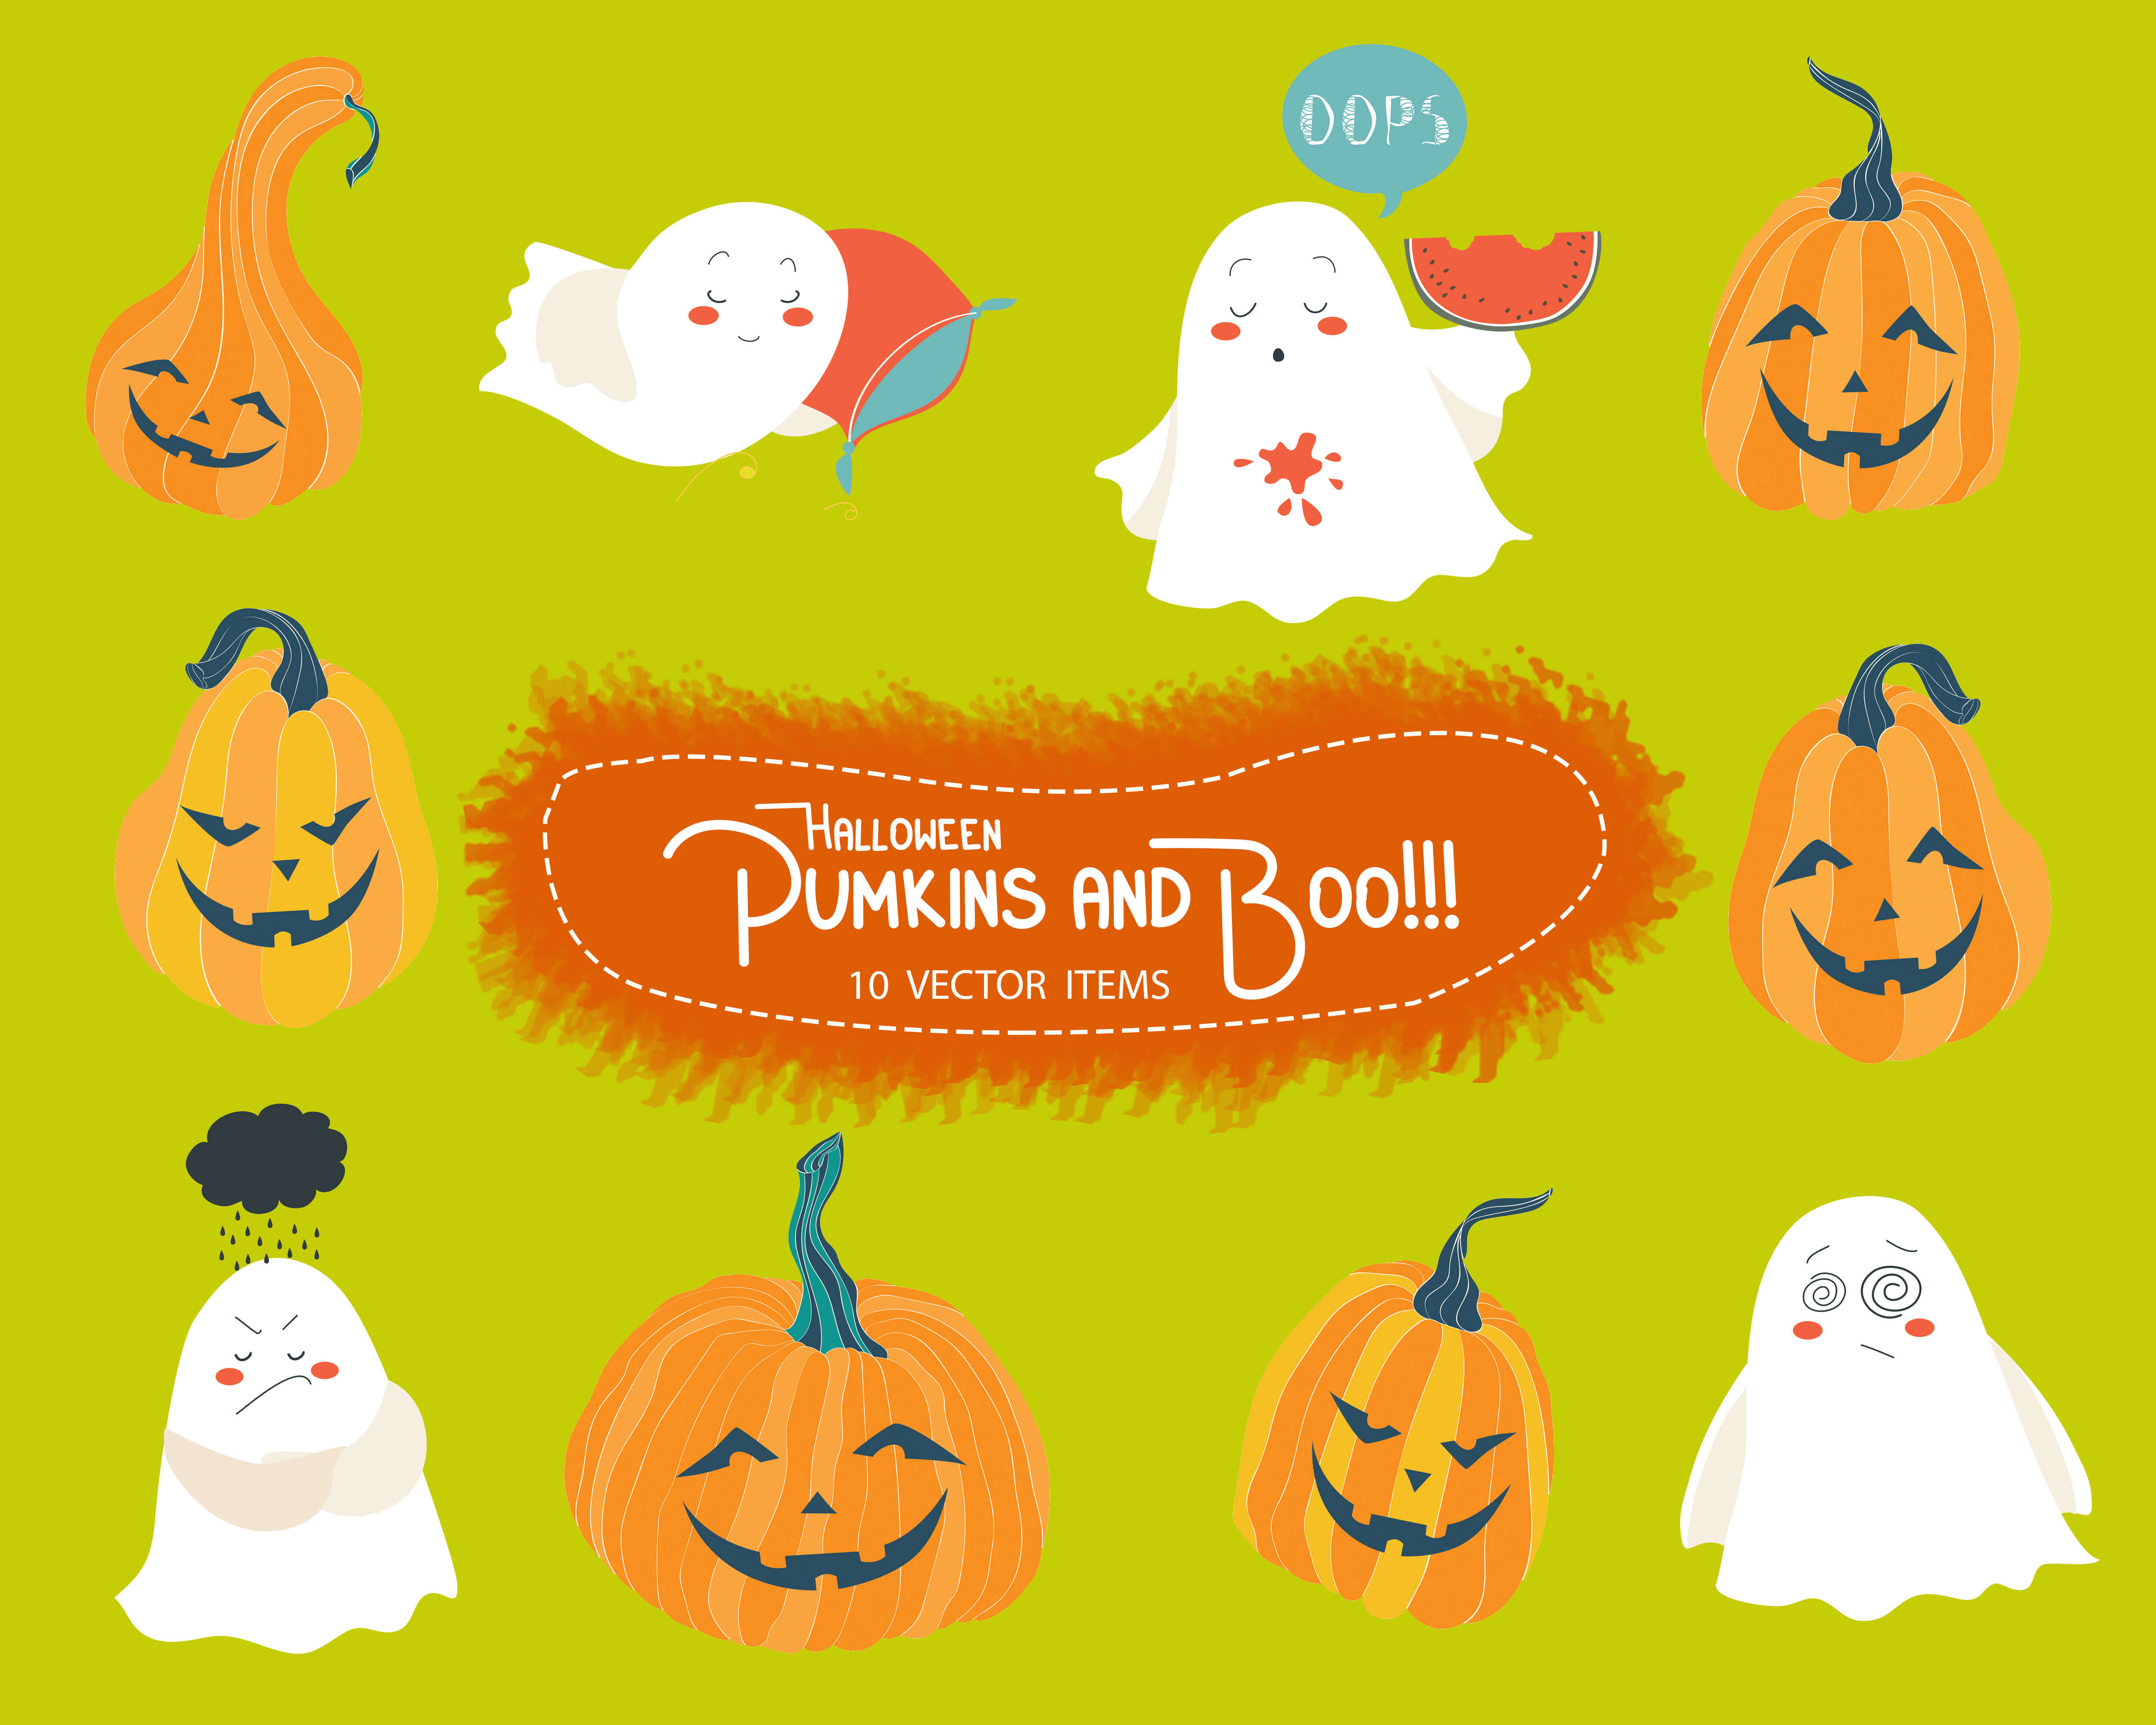 Spooky Vector Images - 10 Pumpkins & Boo